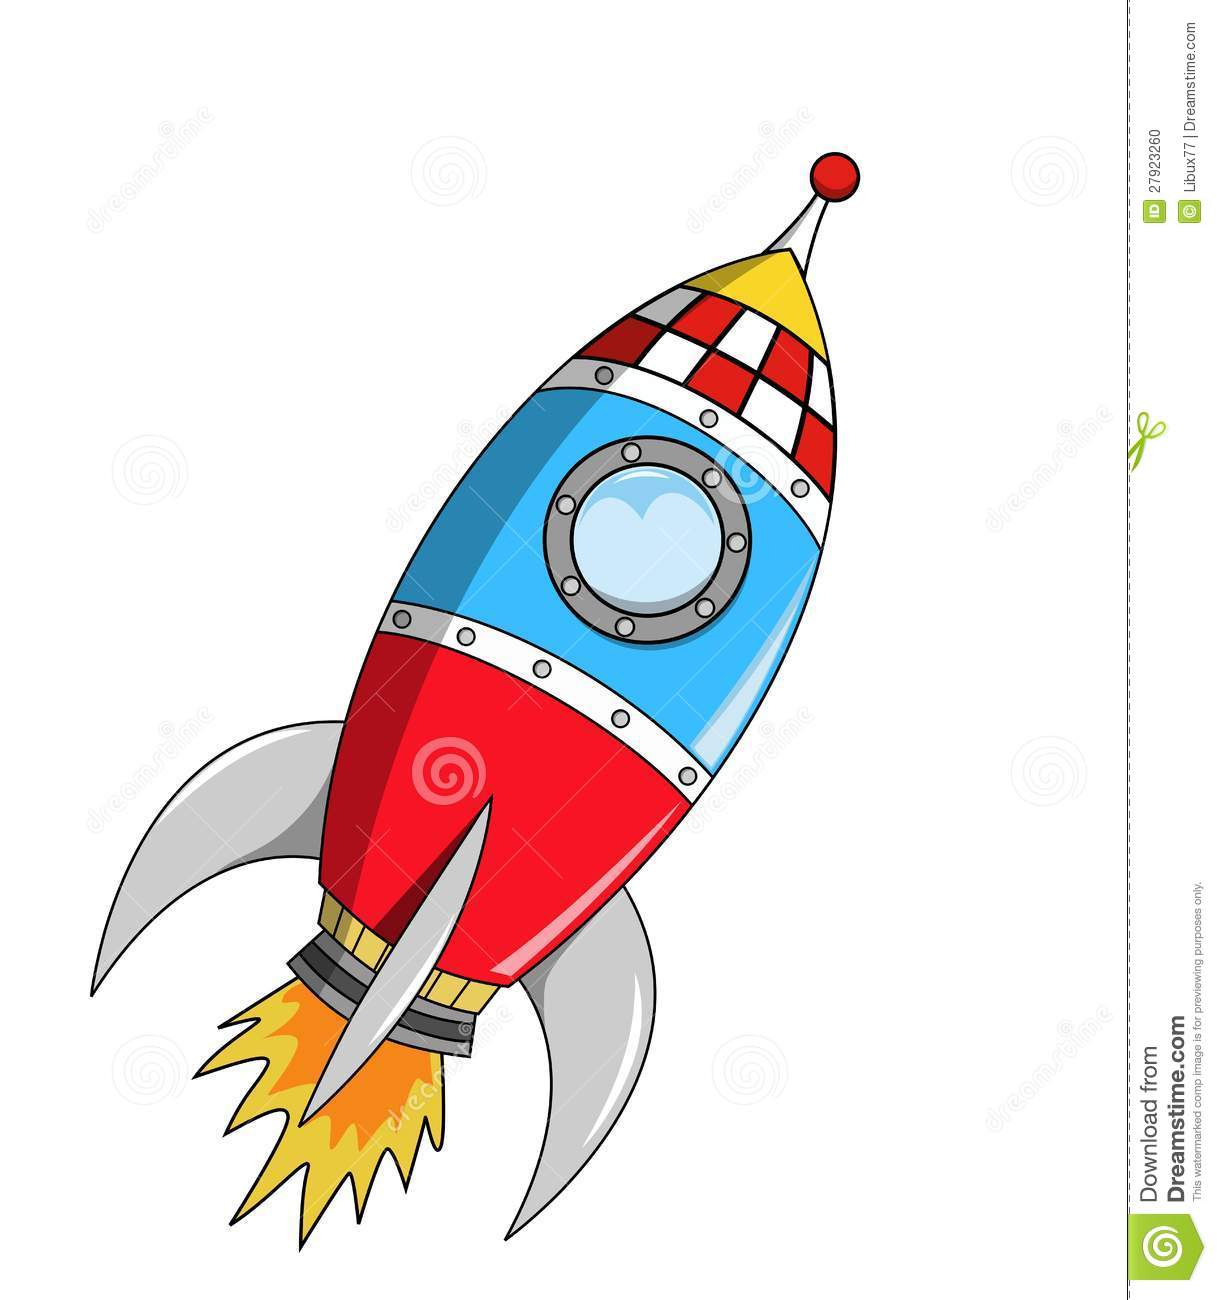 cartoon space rocket on mission stock vector illustration of futuristic  cartoon 27923260 rocket ship clipart cape canaveral rocket ship clipart cape canaveral